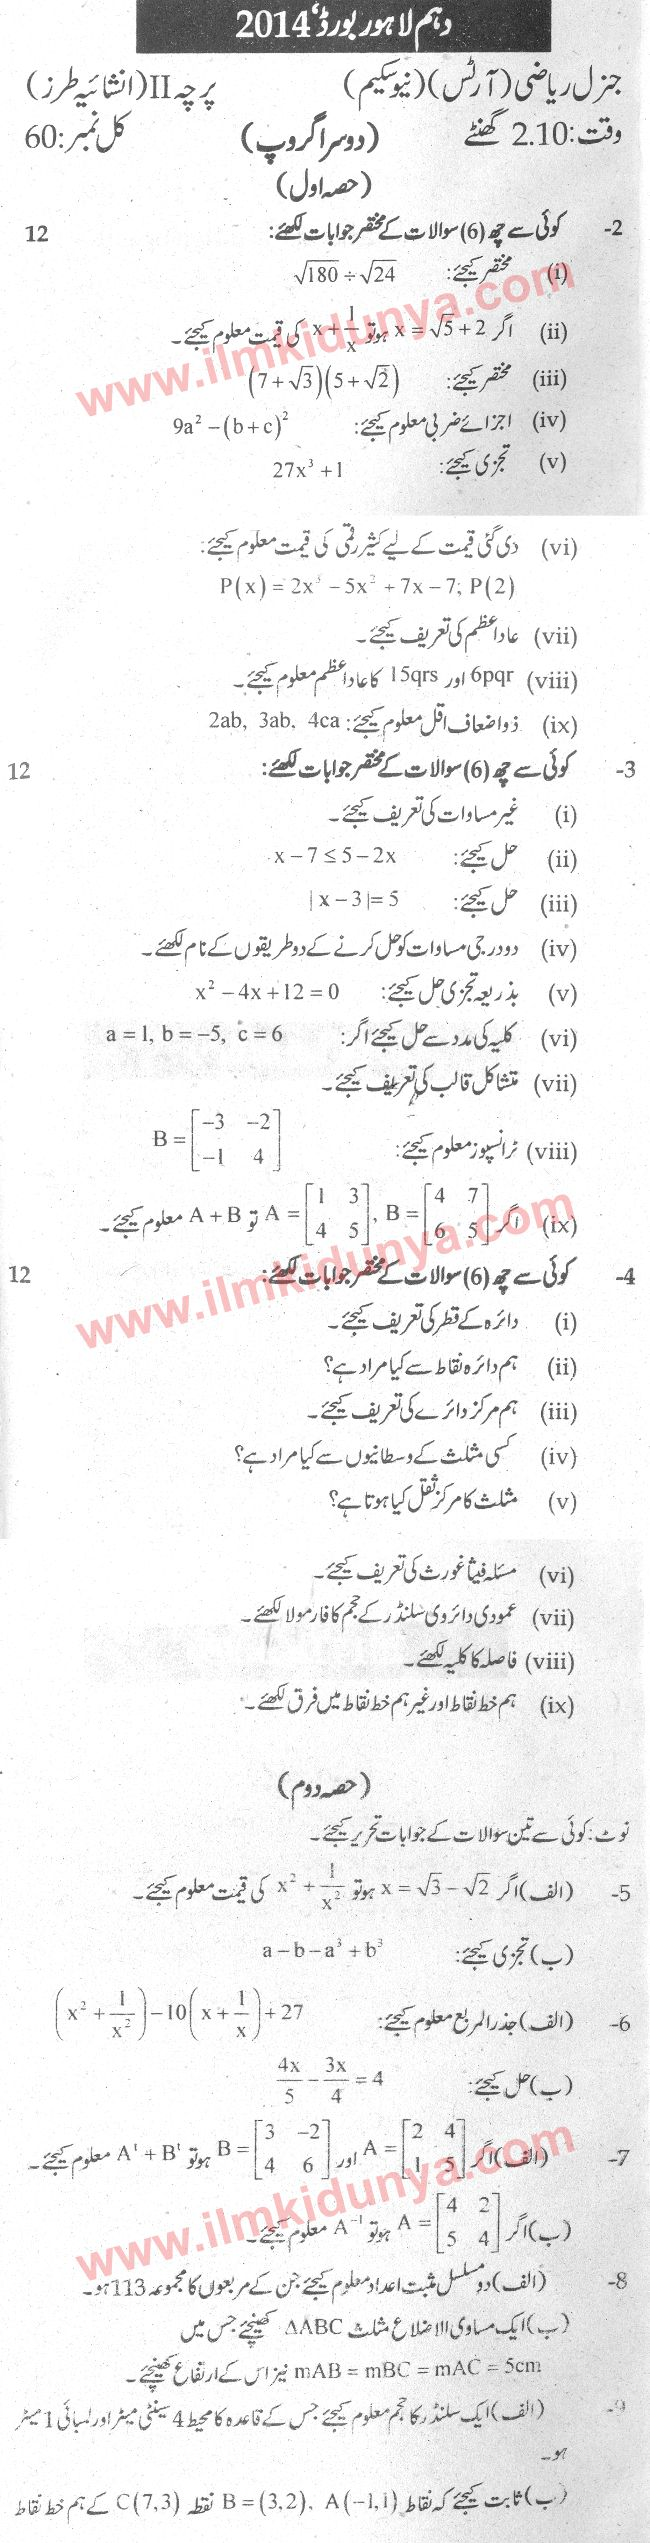 worksheet Math Paper past papers 2014 lahore board 10th class general math subjective group 2